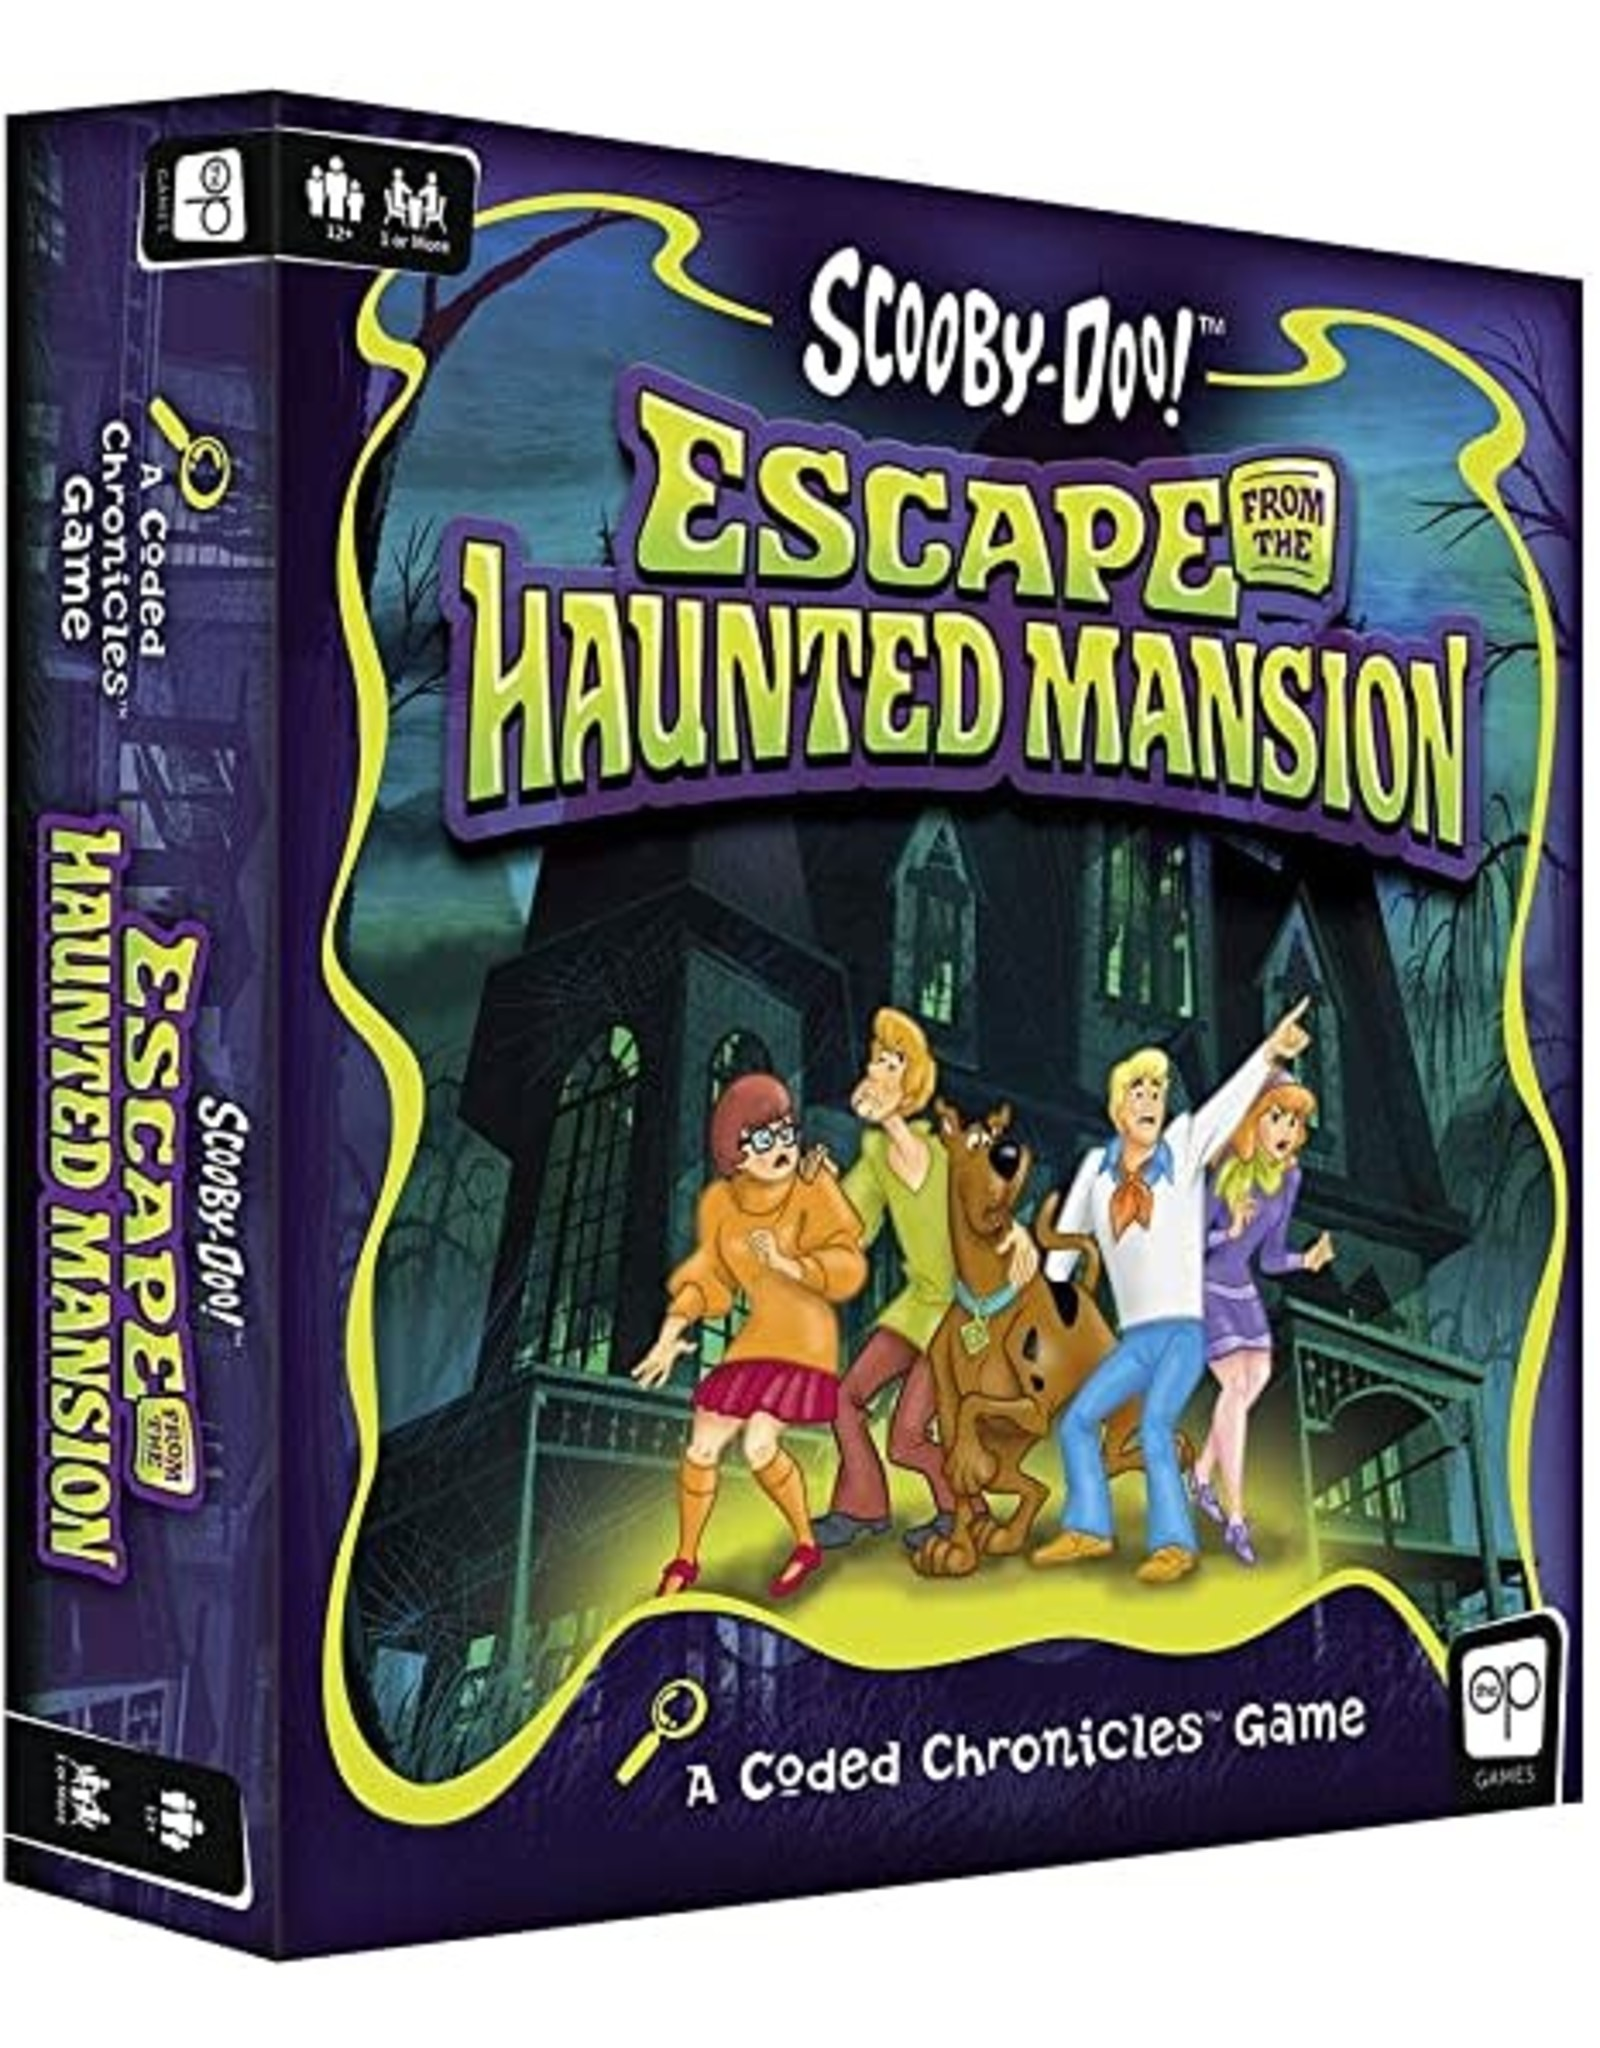 Coded Chronicles: Scooby Doo@